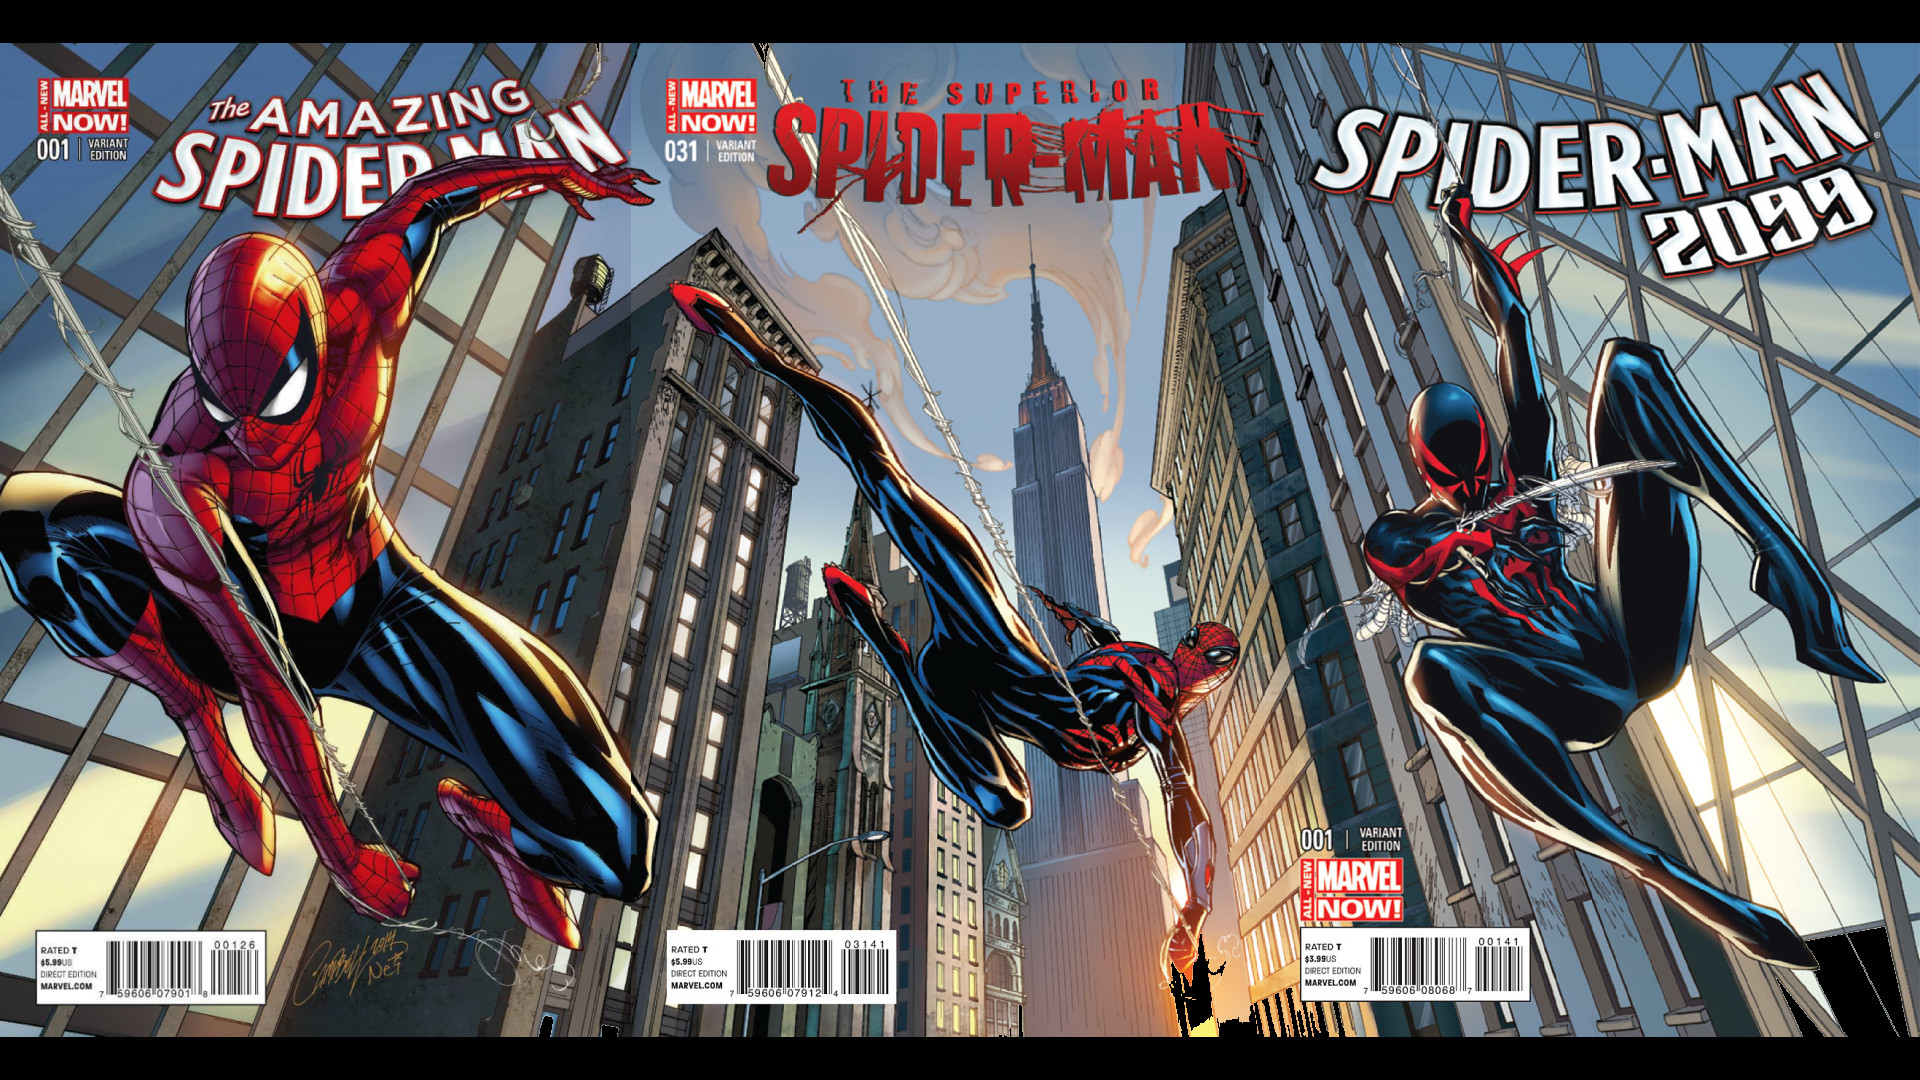 For those asking for a wallpaper of the Campbell Spider-Man variants.